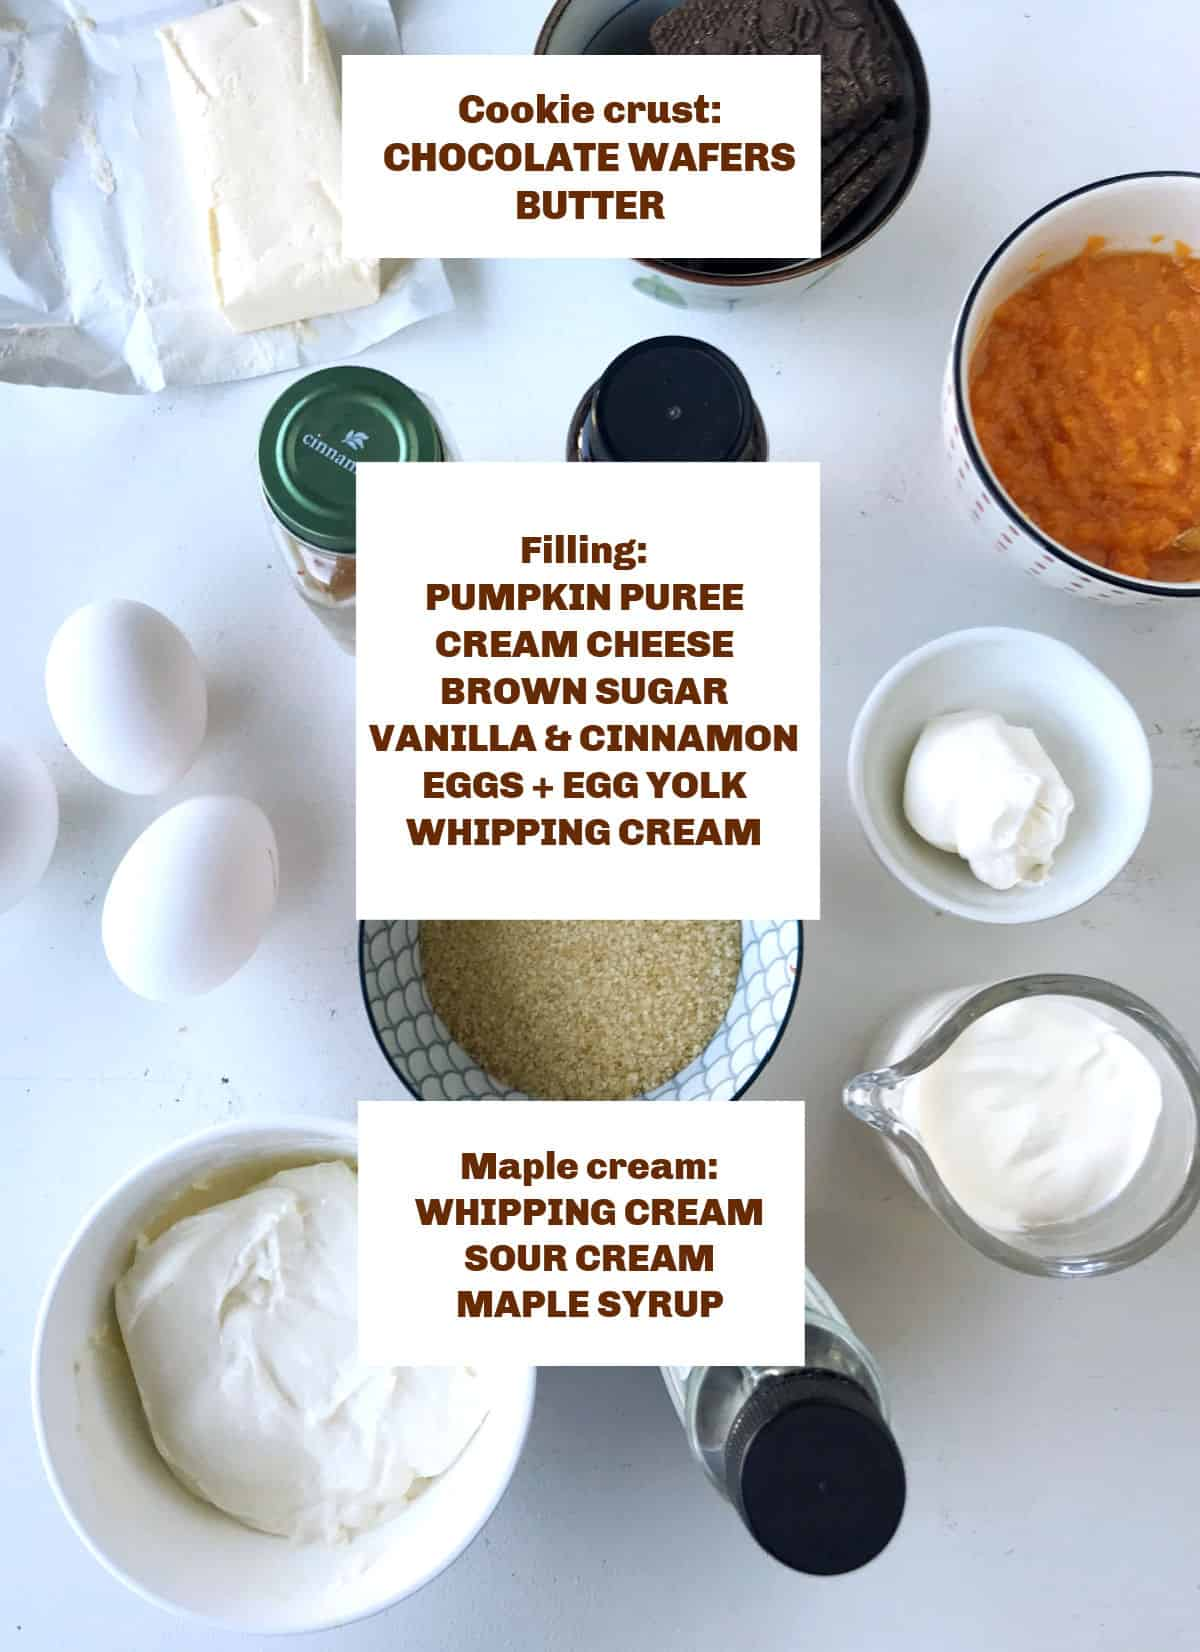 Ingredients for pumpkin cream cheesecake in bowls and containers on a white surface